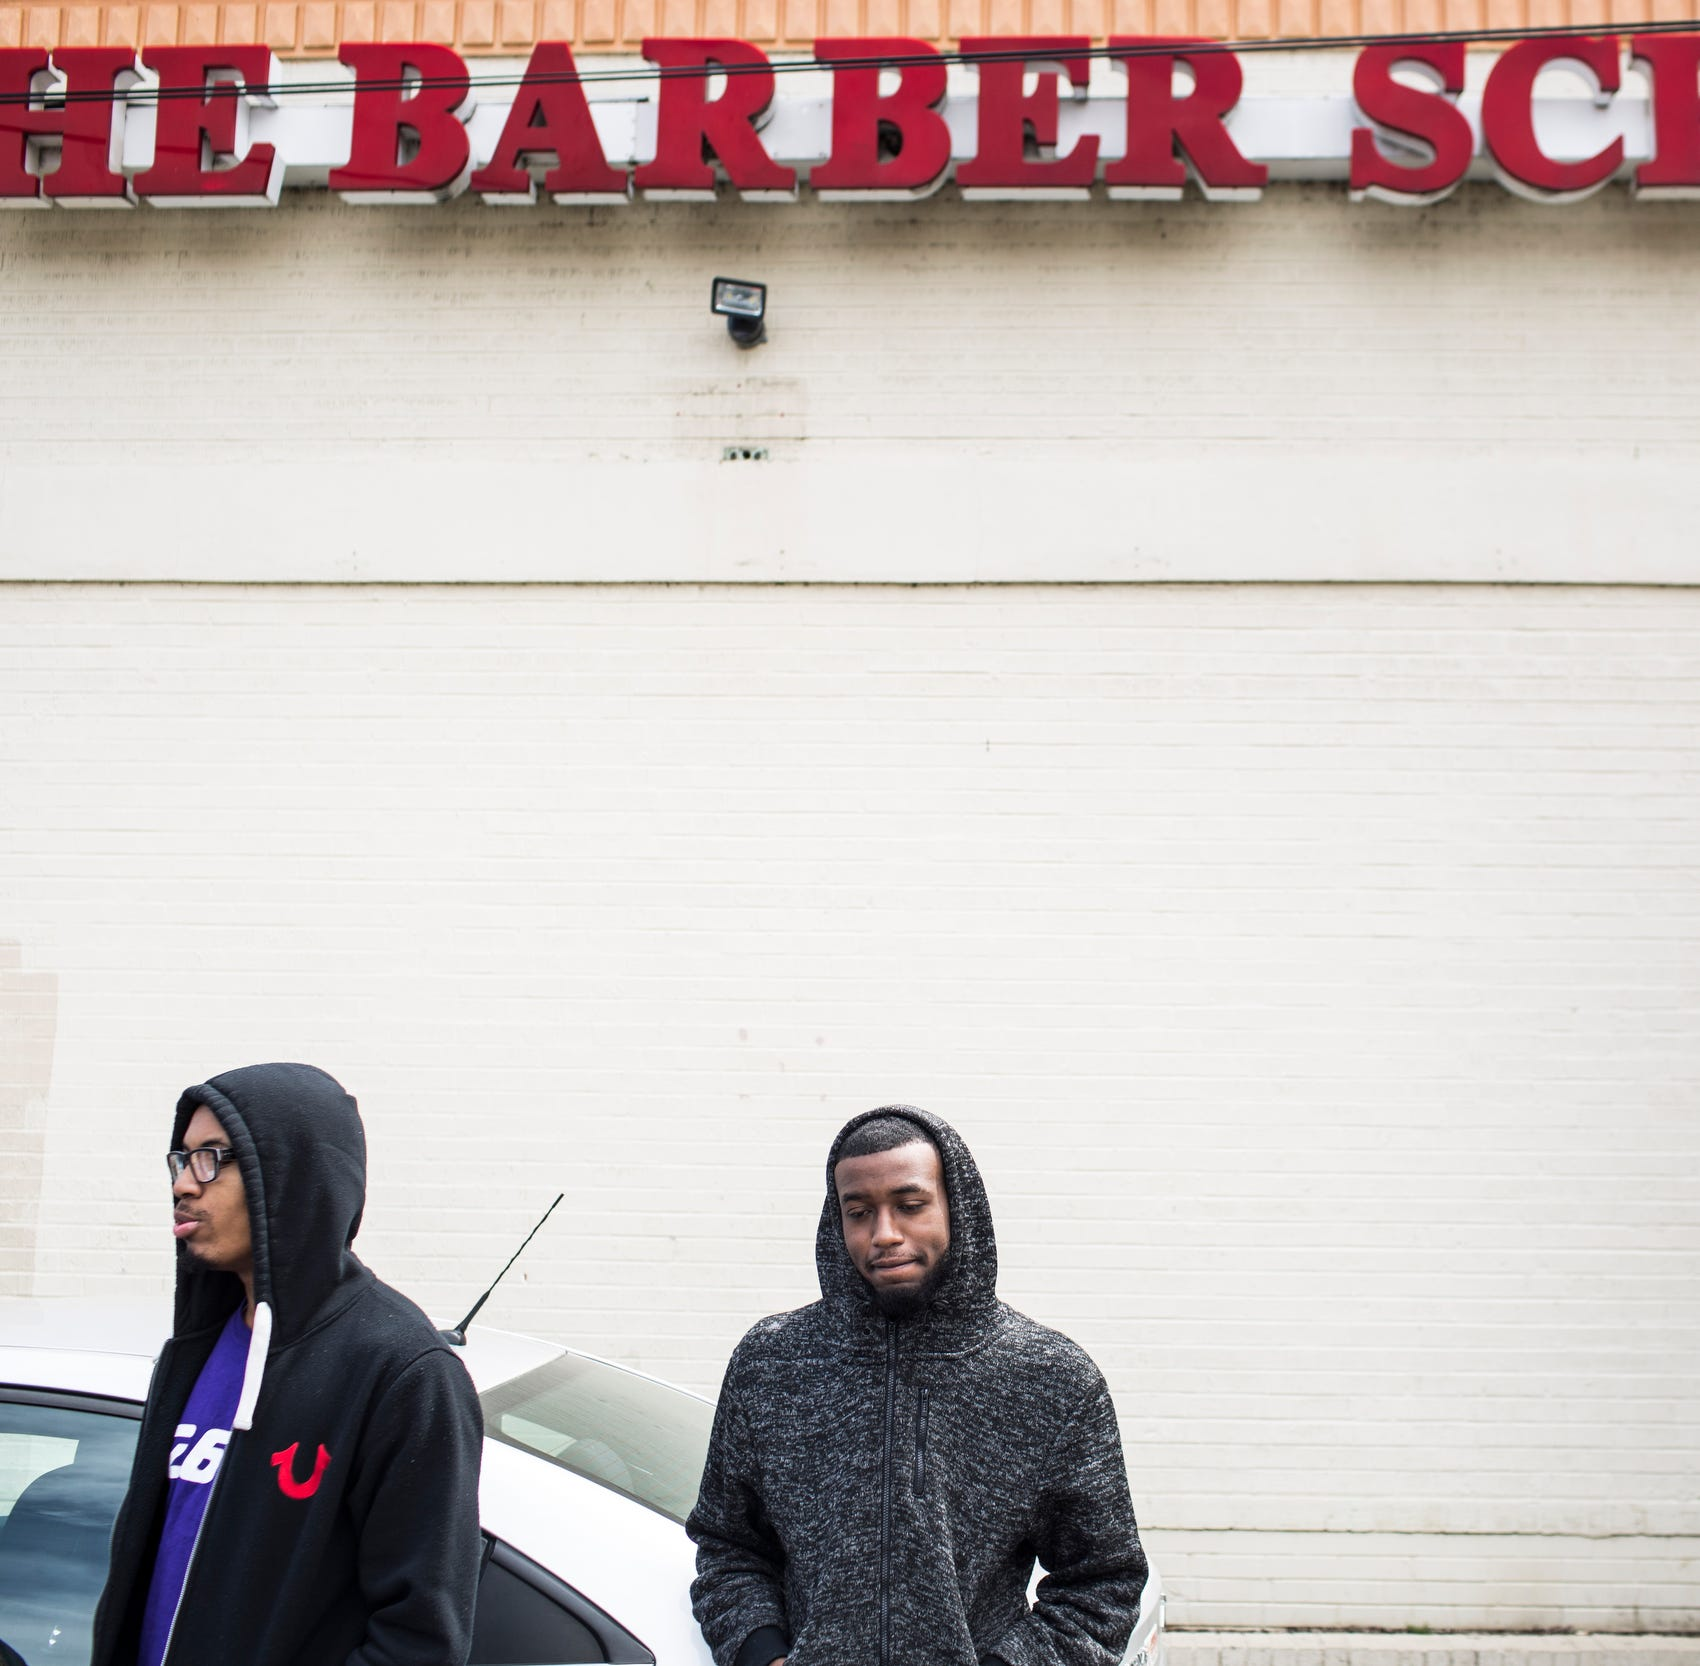 The Barber School closes abruptly after losing access to federal student aid